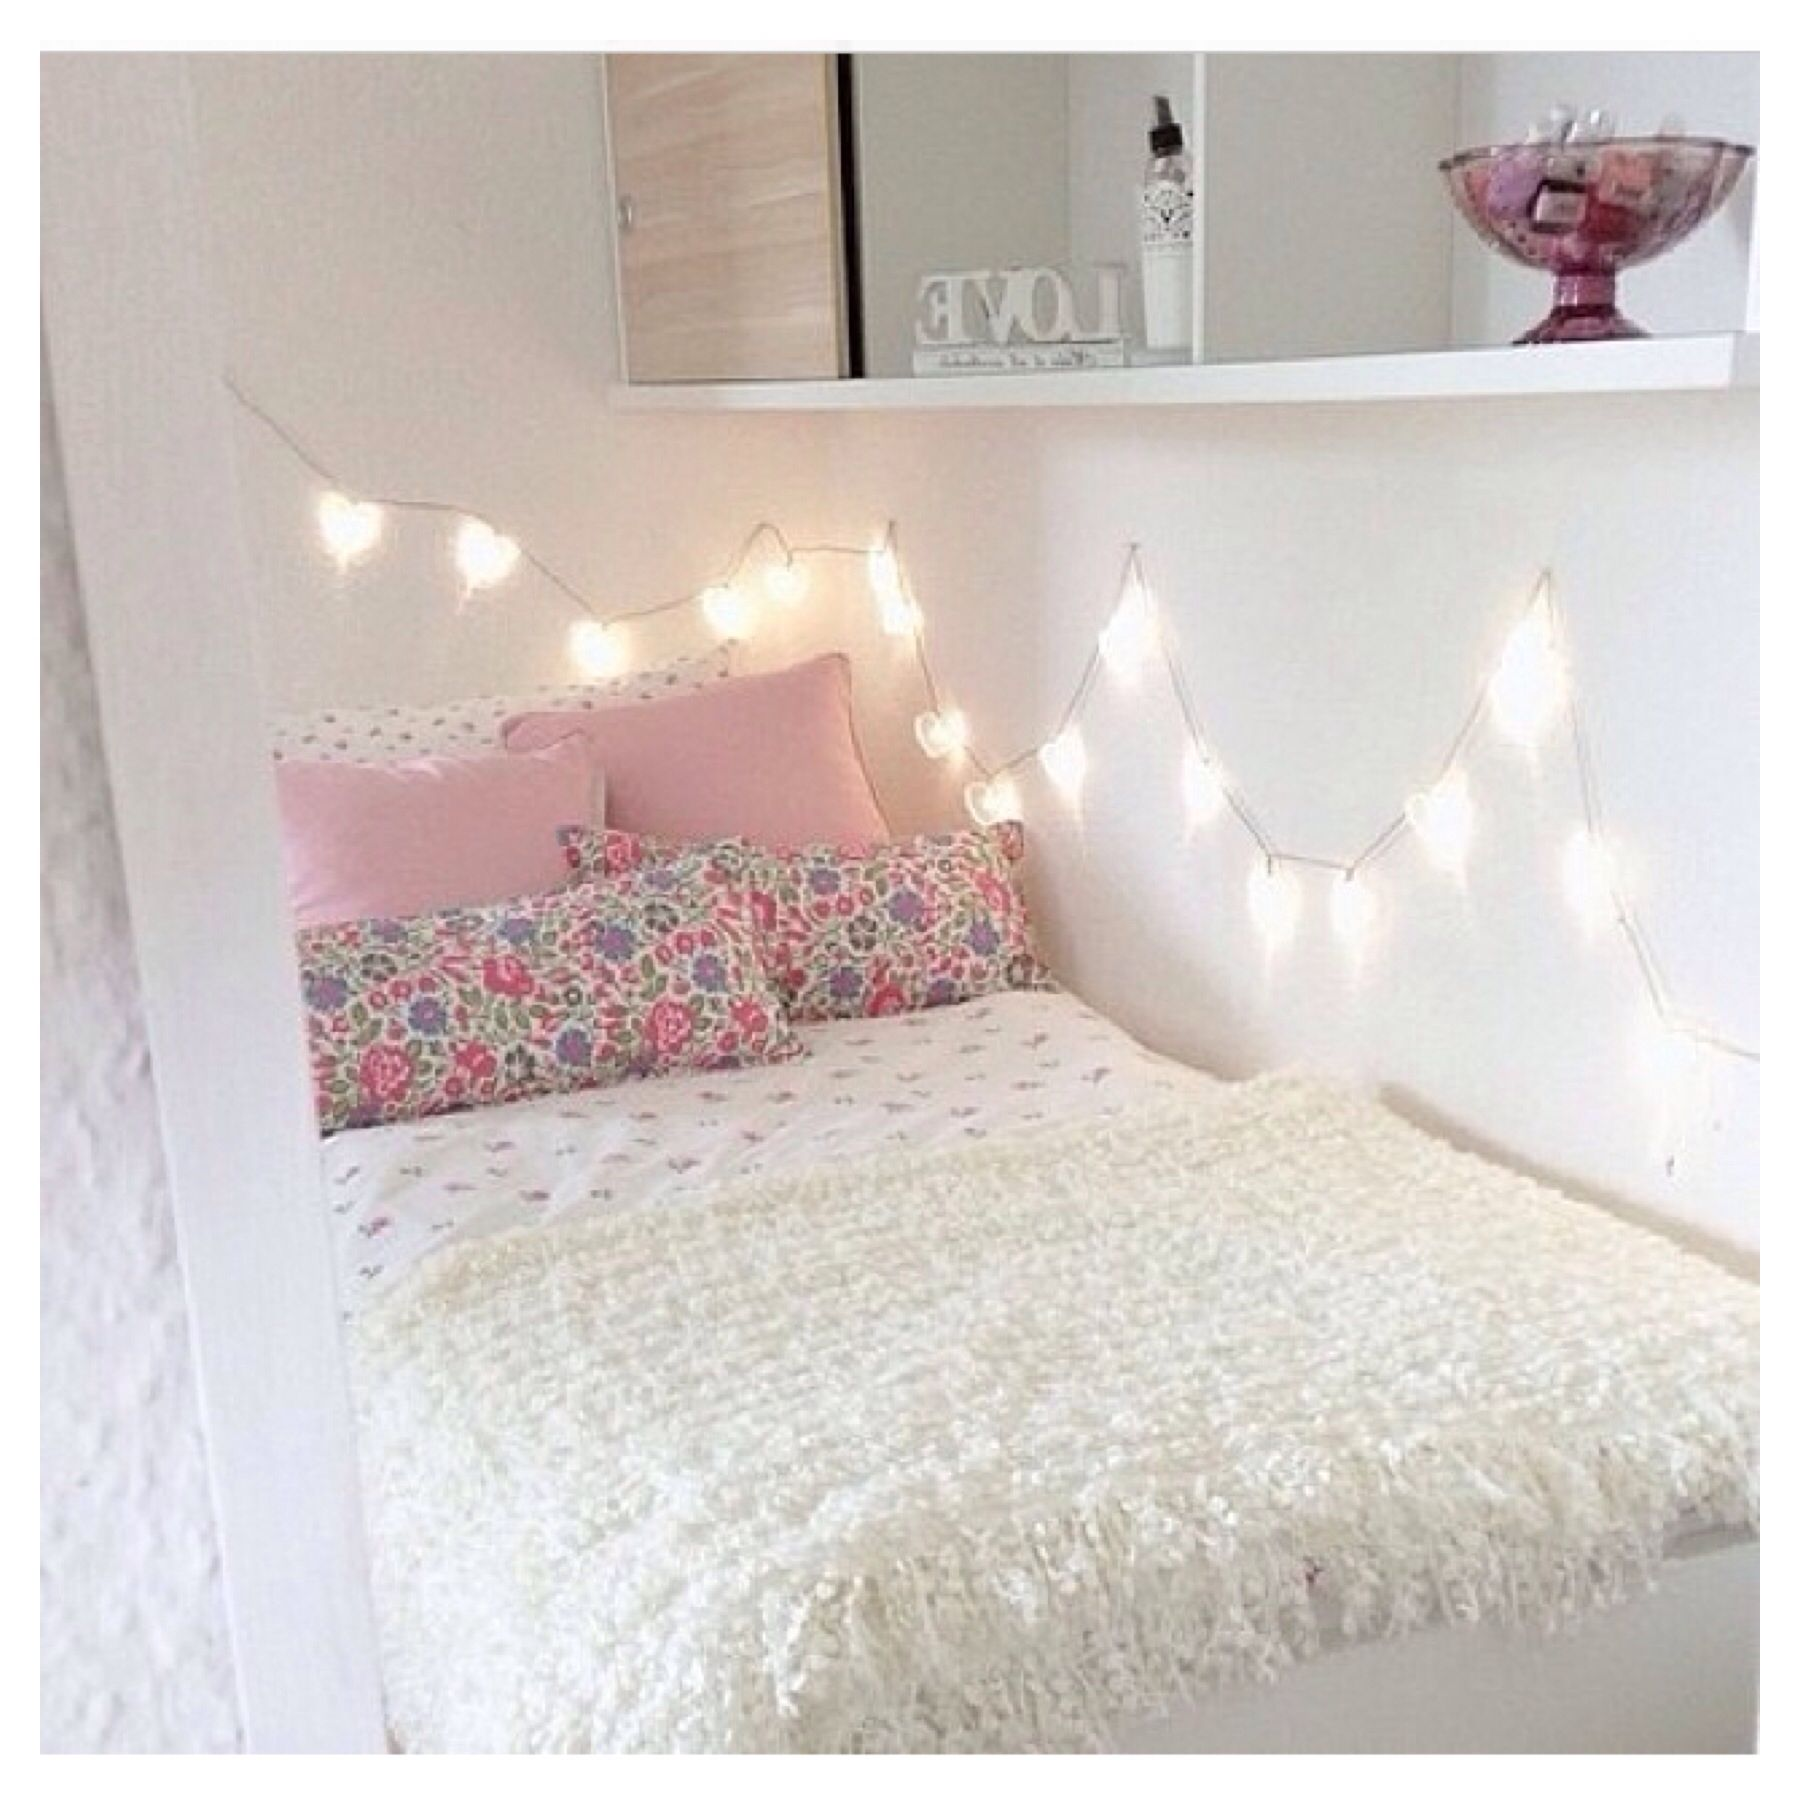 Fairy light room decor ideas for bedroom pinterest for Room decor with fairy lights